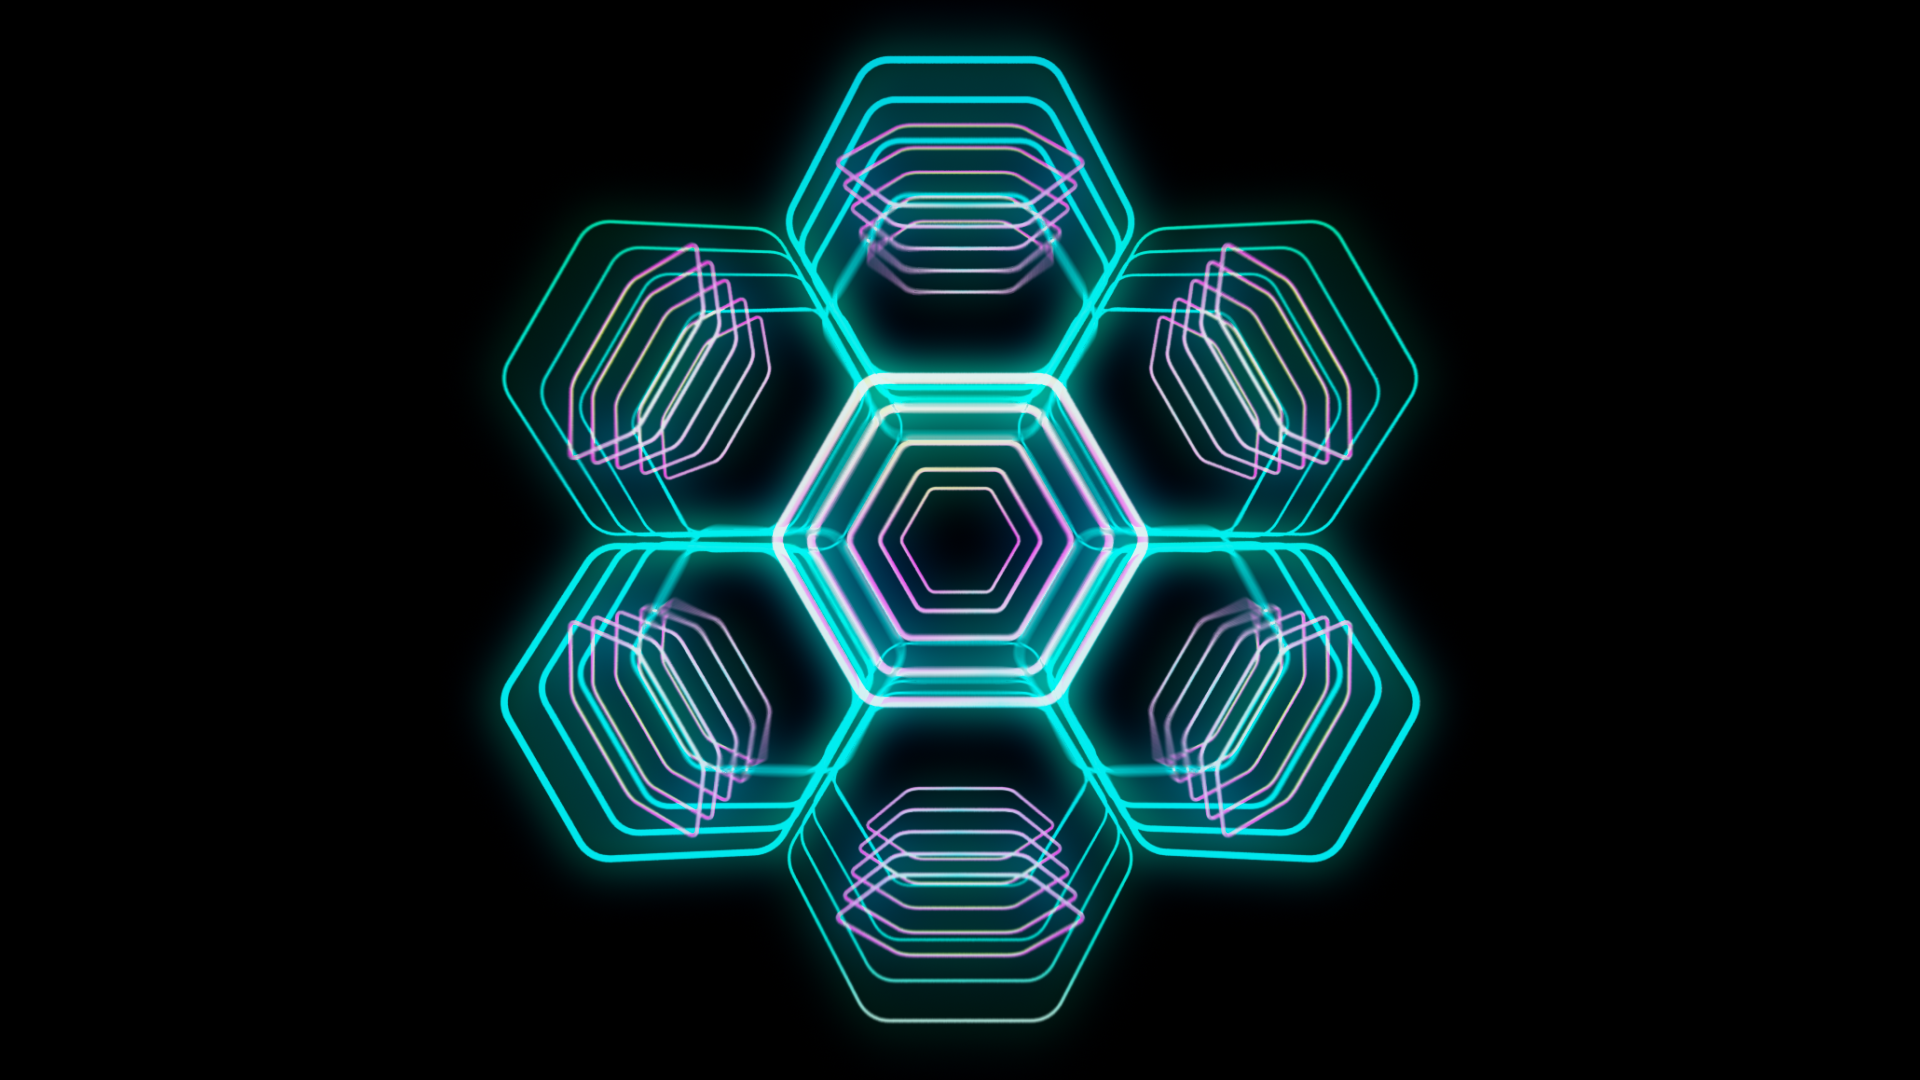 Shapeshifters is a set of 50 VJ Loops - 3D shapes and forms with alpha channel